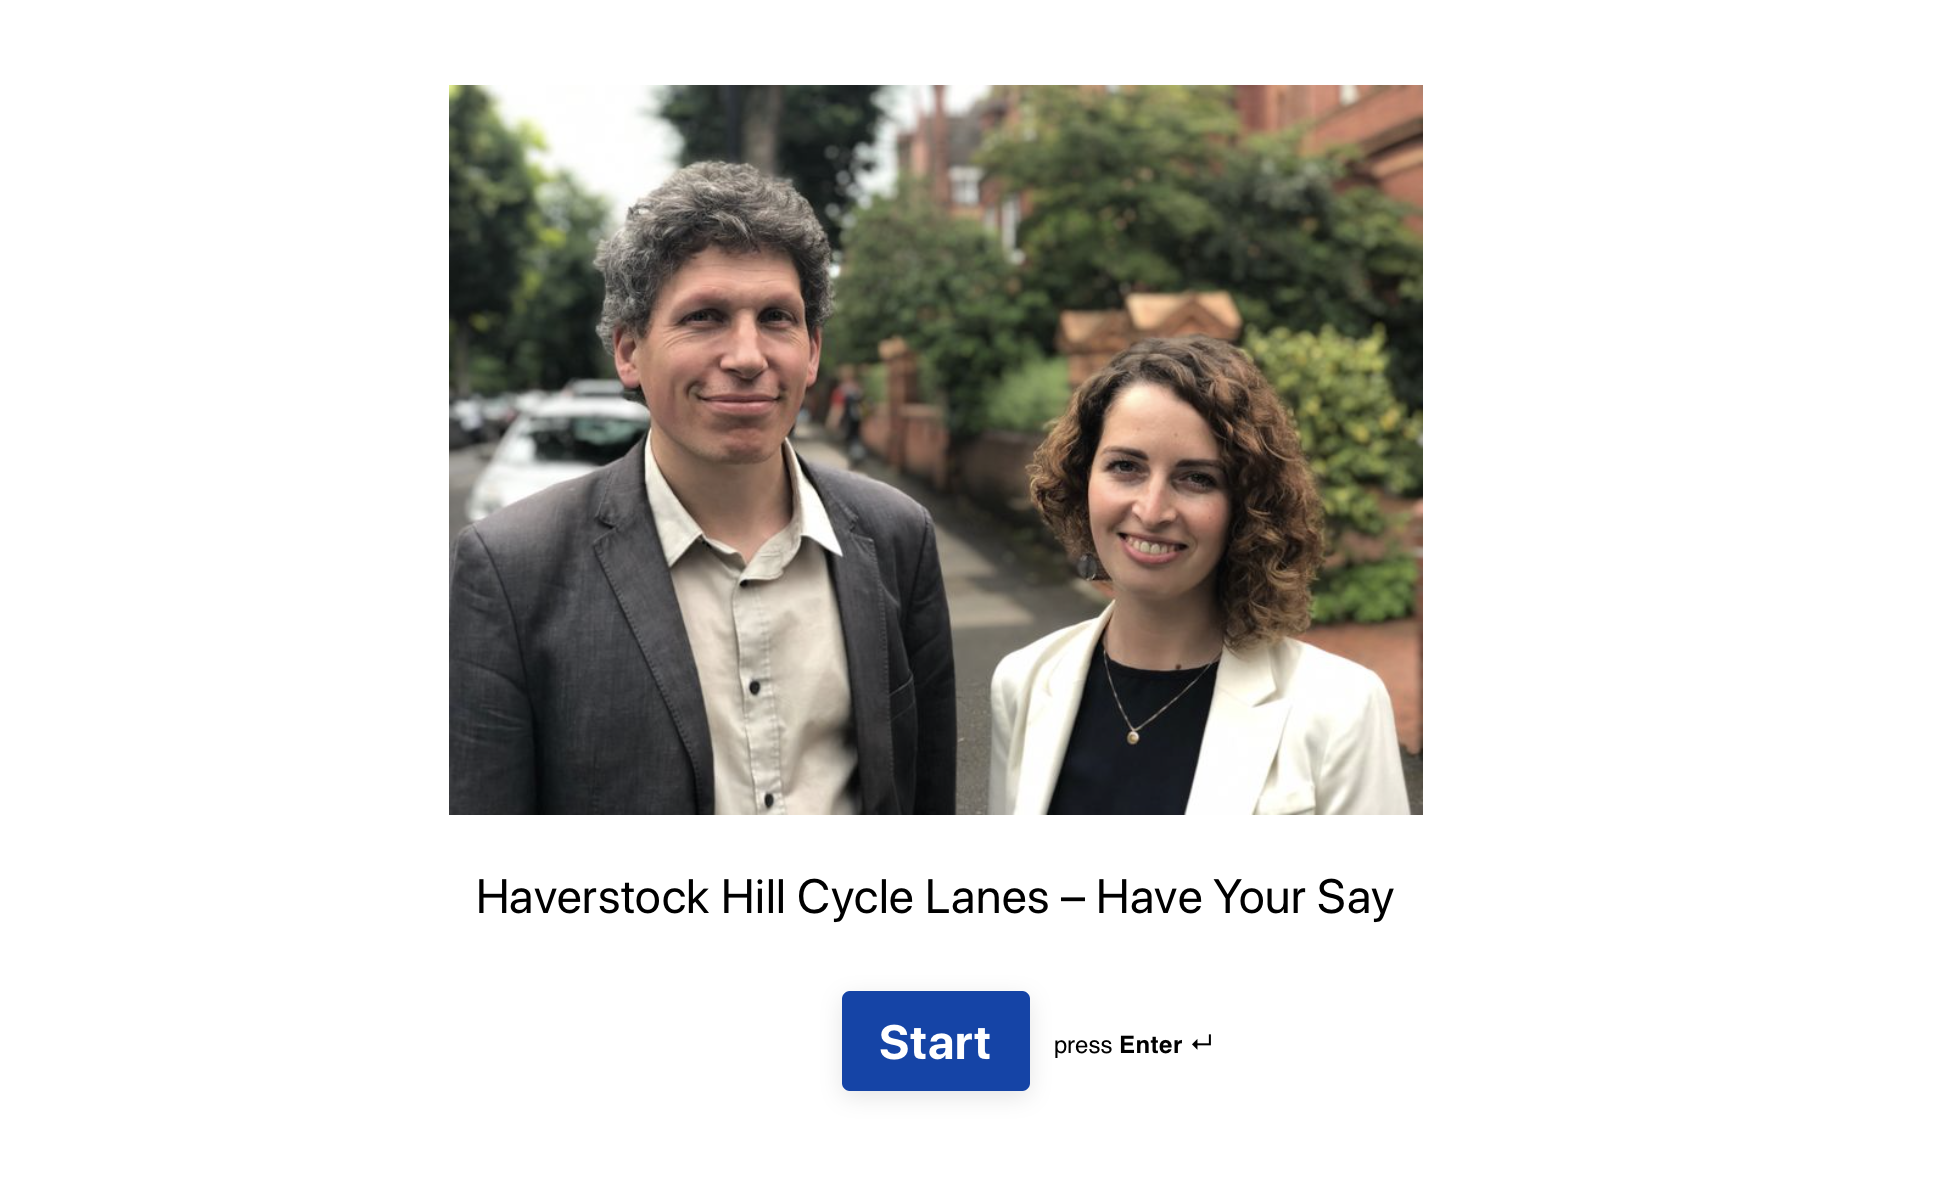 Haverstock Hill Cycle Lanes – Have Your Say